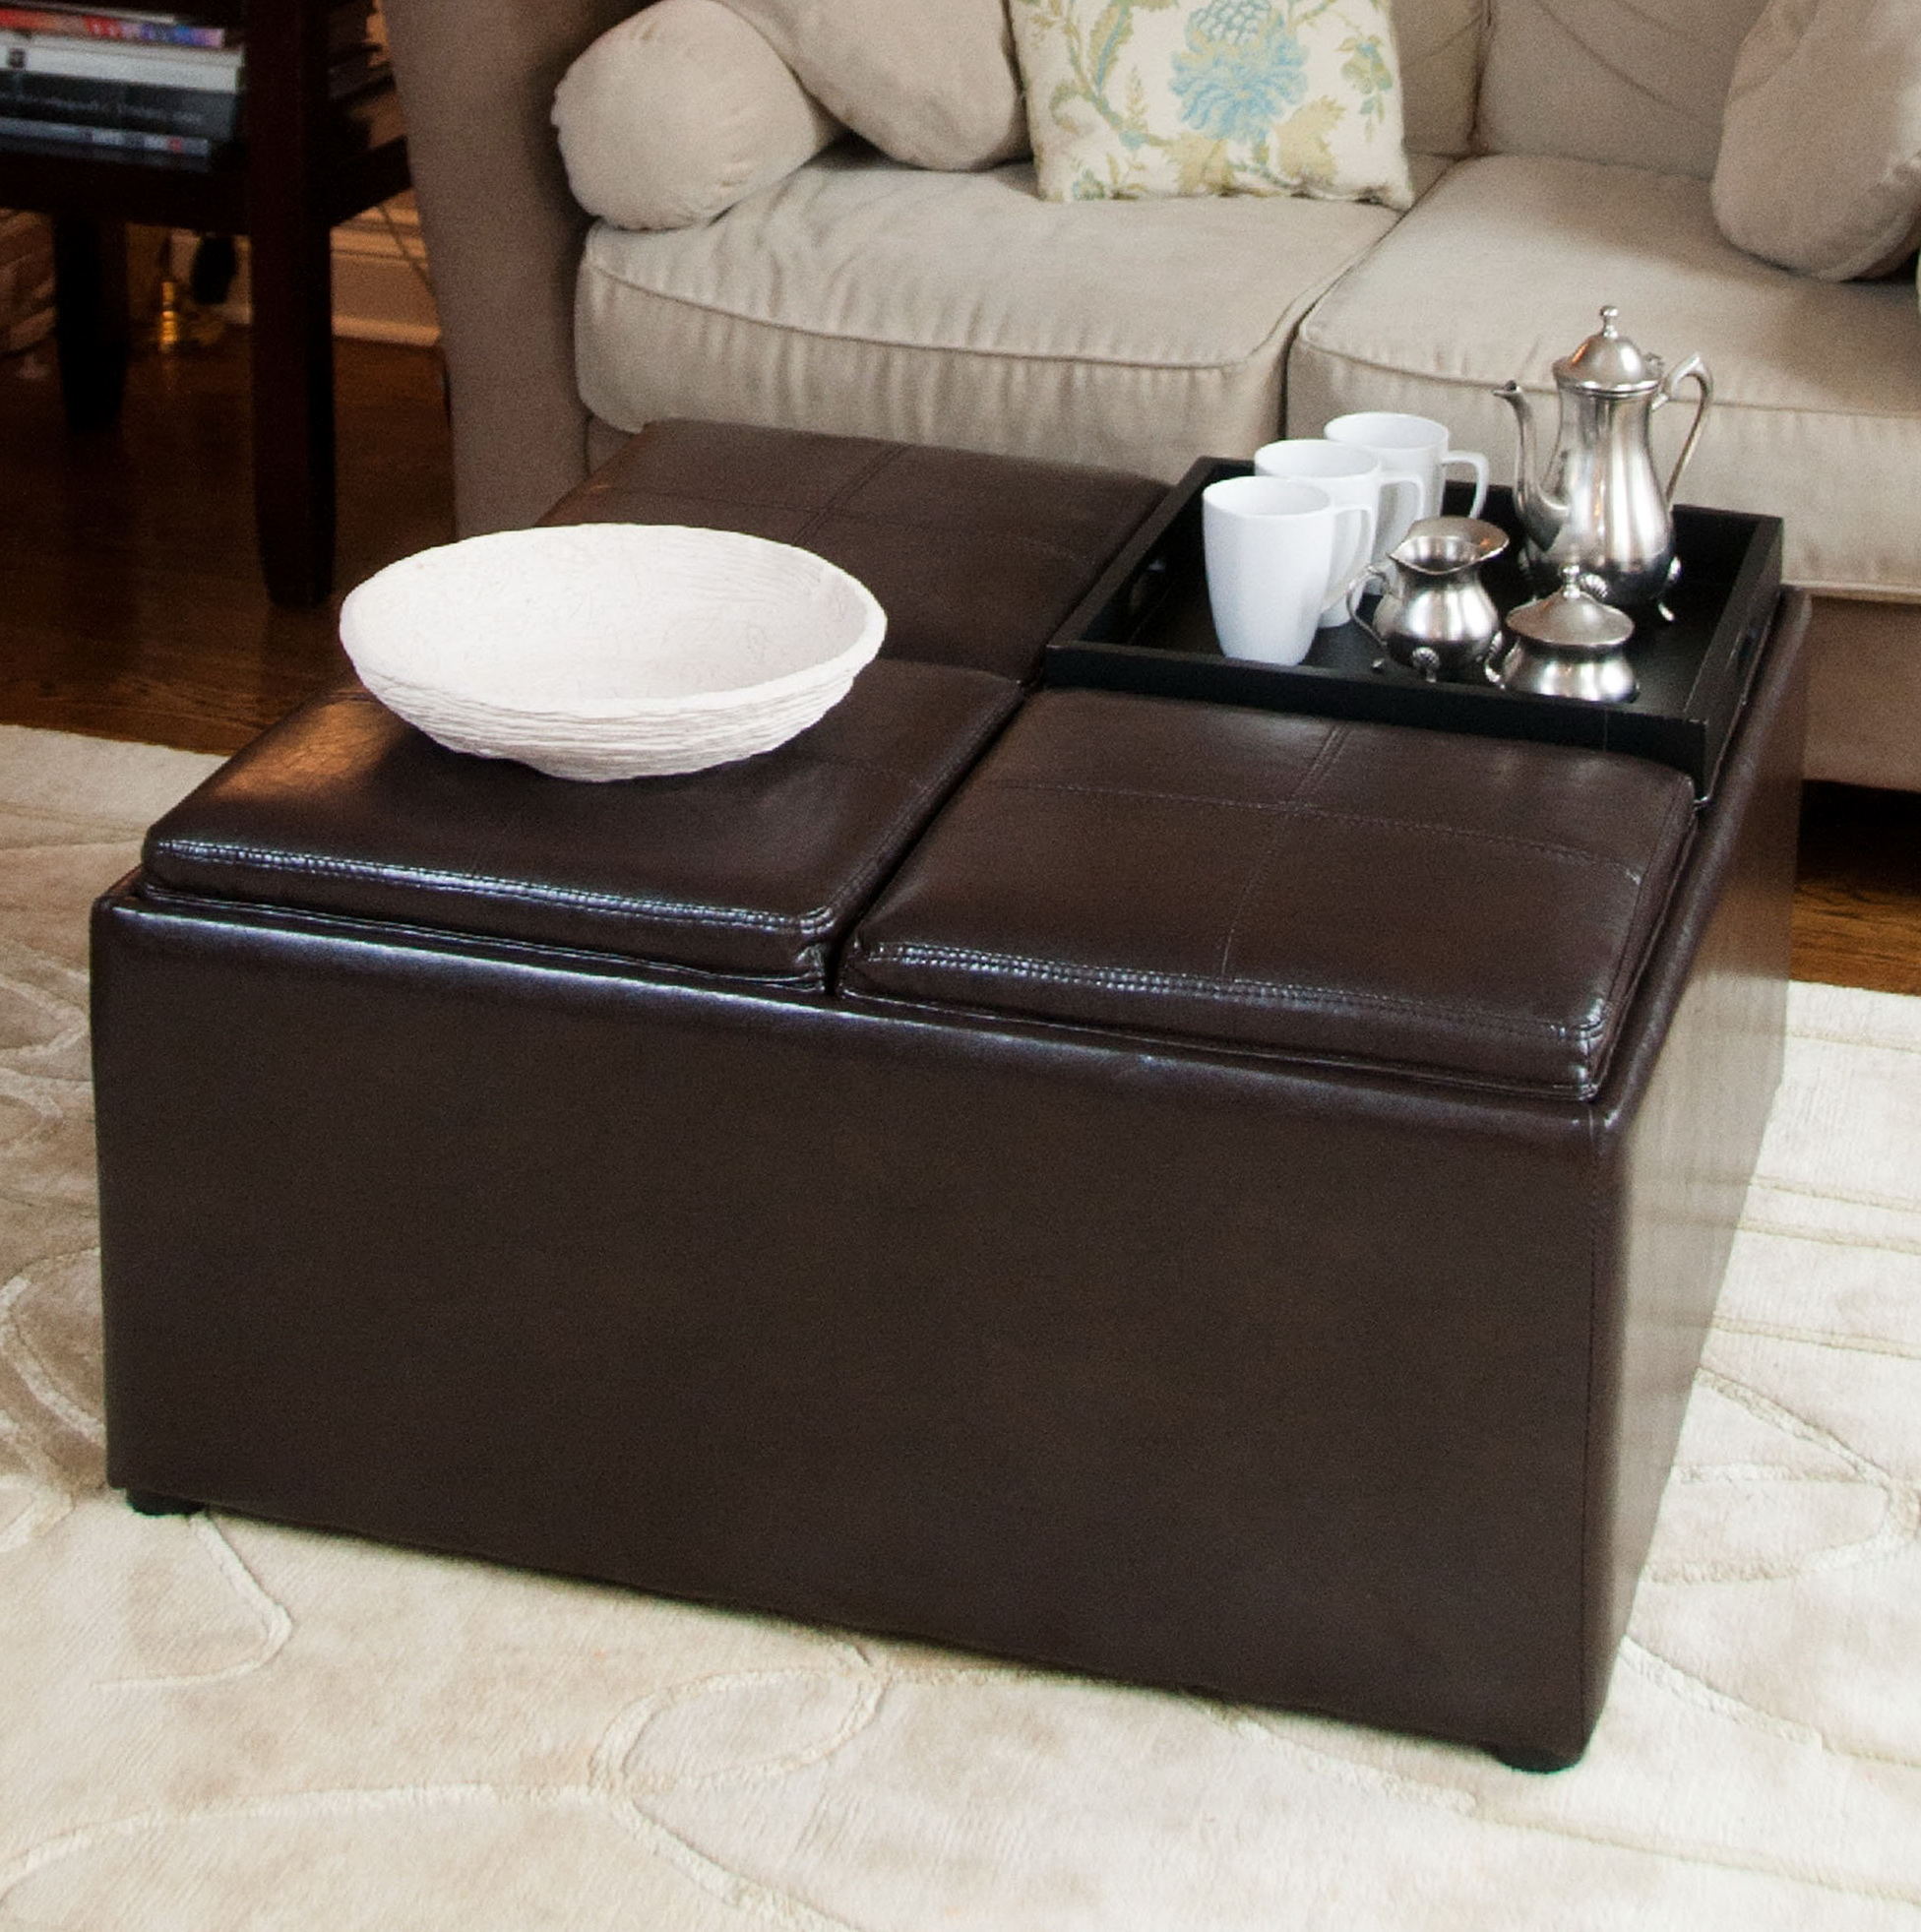 Ottoman Coffee Table Tray Uk: Coffee Table Ottoman Tray